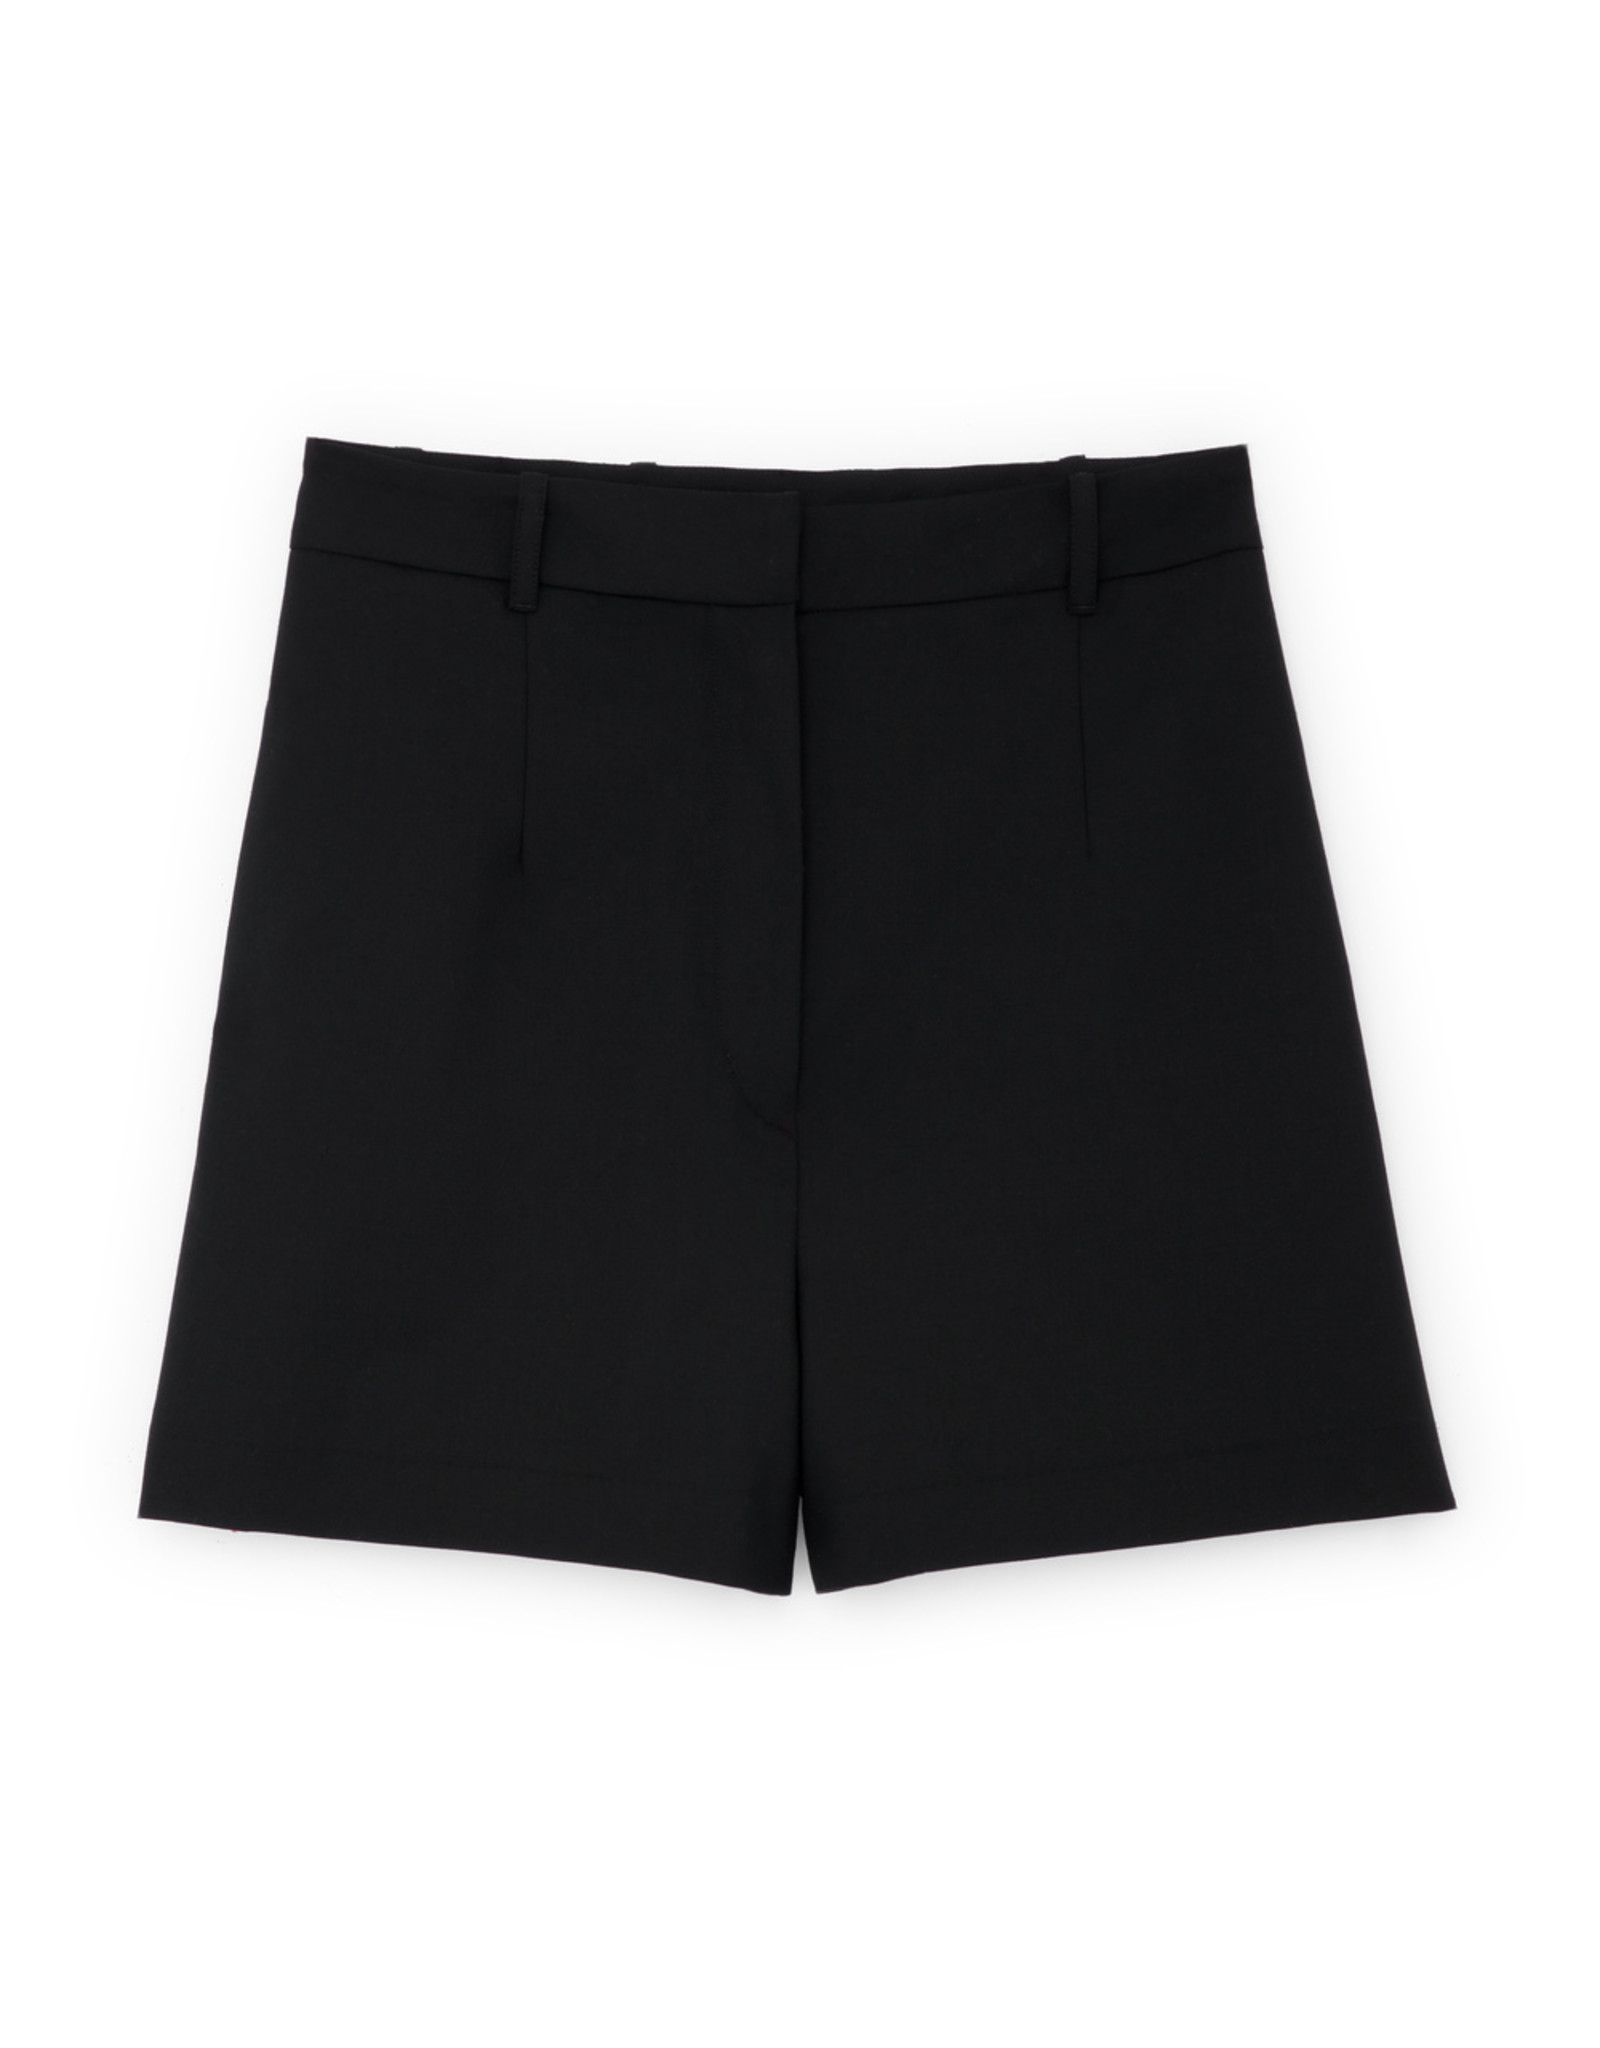 G. Label G. Label Anthony Tailored Shorts (Color: Black, Size: 2)